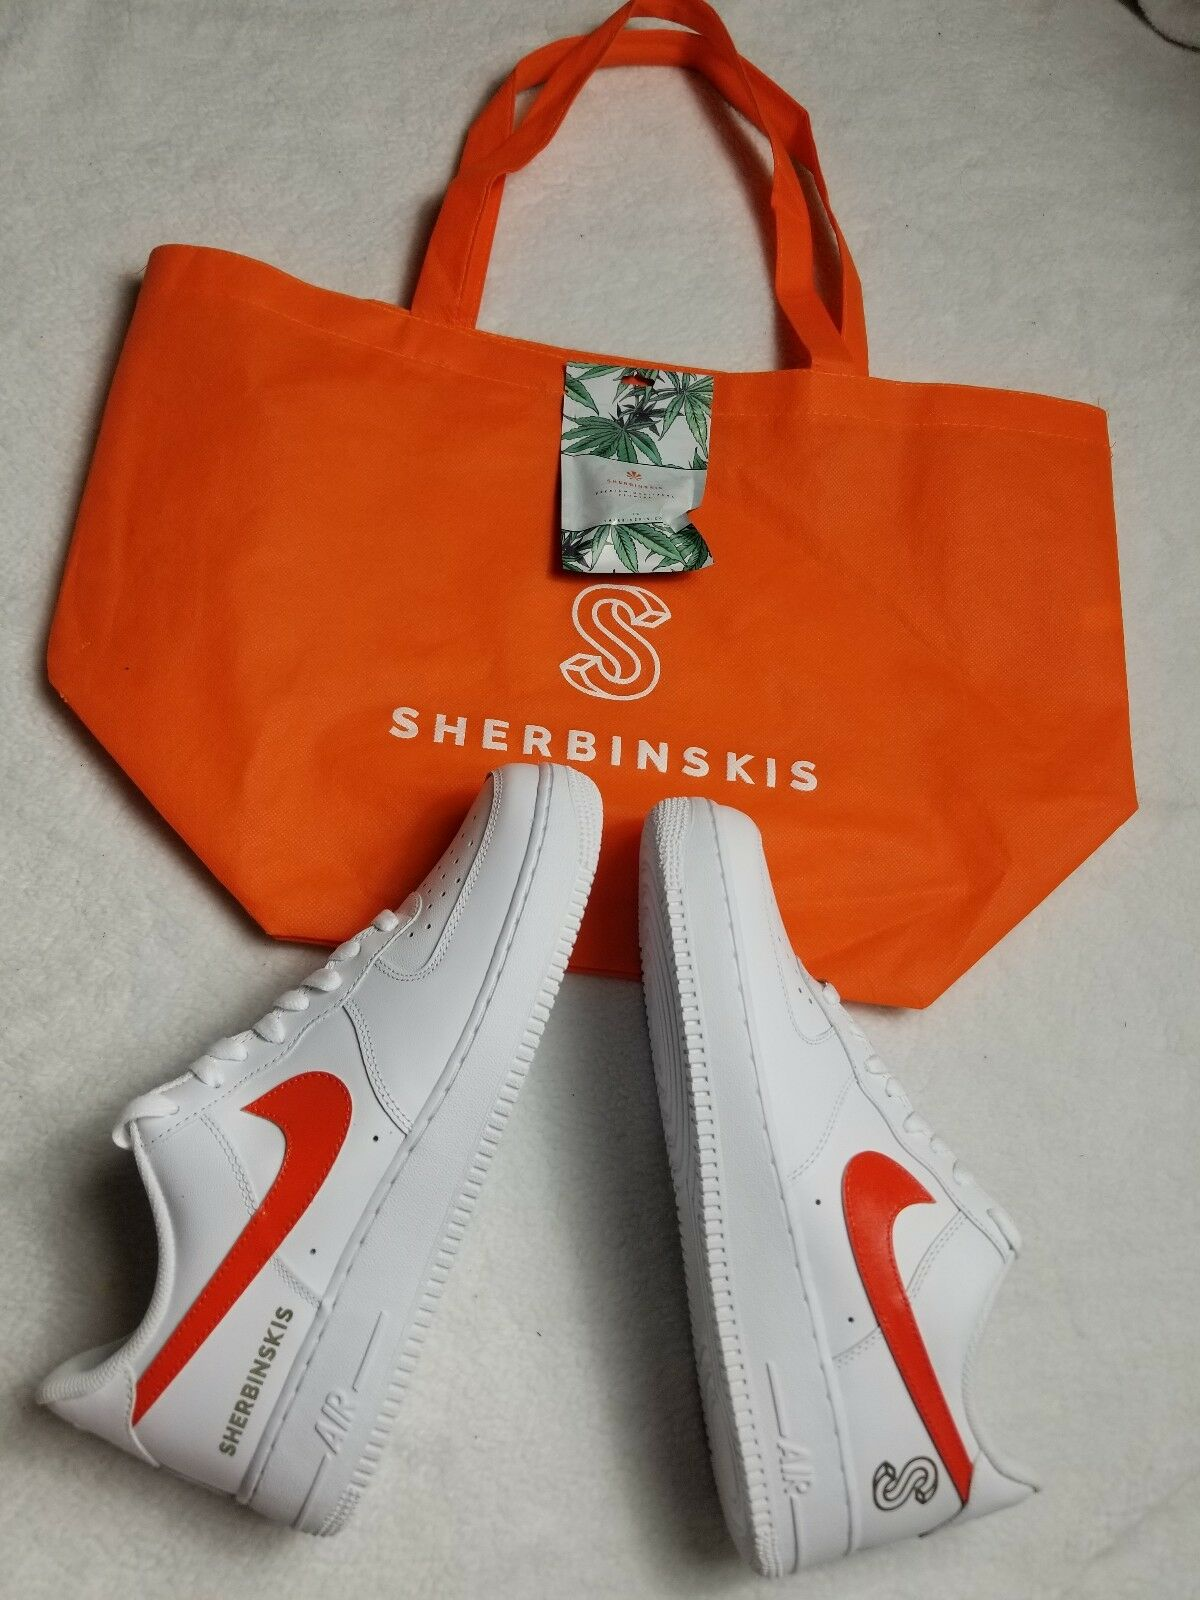 Sherbinskis Air Force 1 Bespoke Complexcon exclusive Sz 10